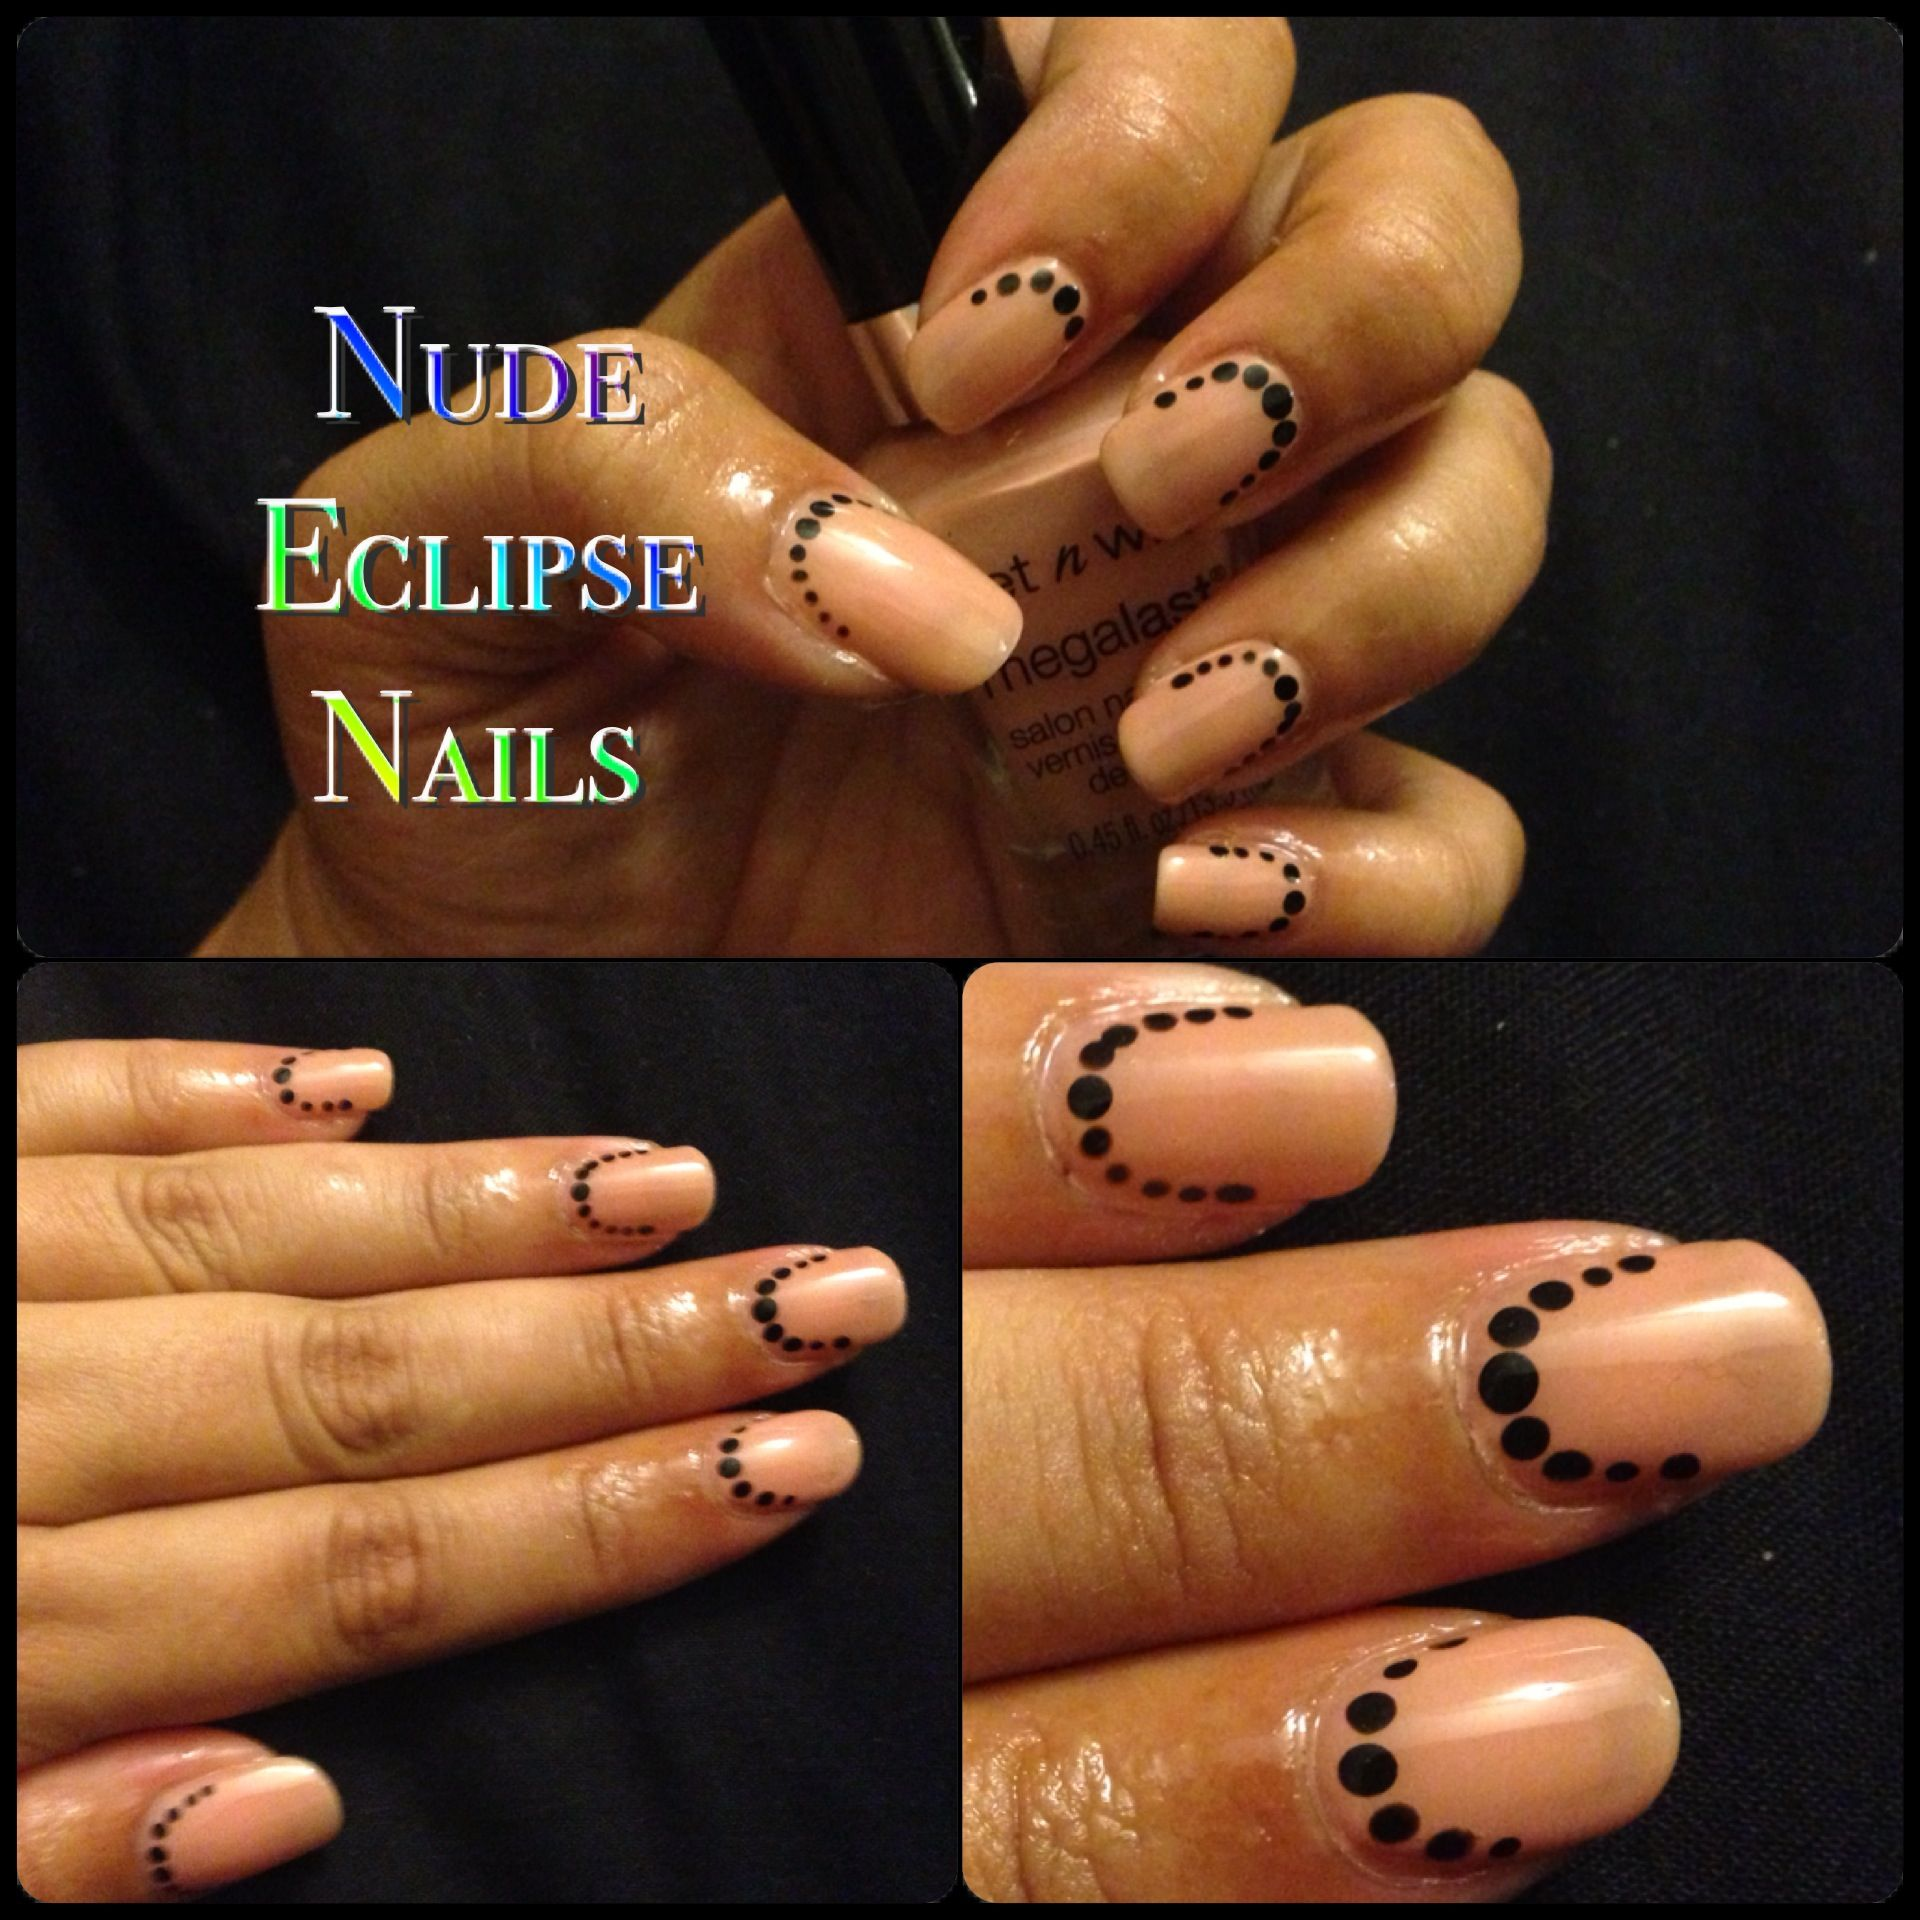 Nude eclipse nail art | A Collection of My Nail Designs | Pinterest